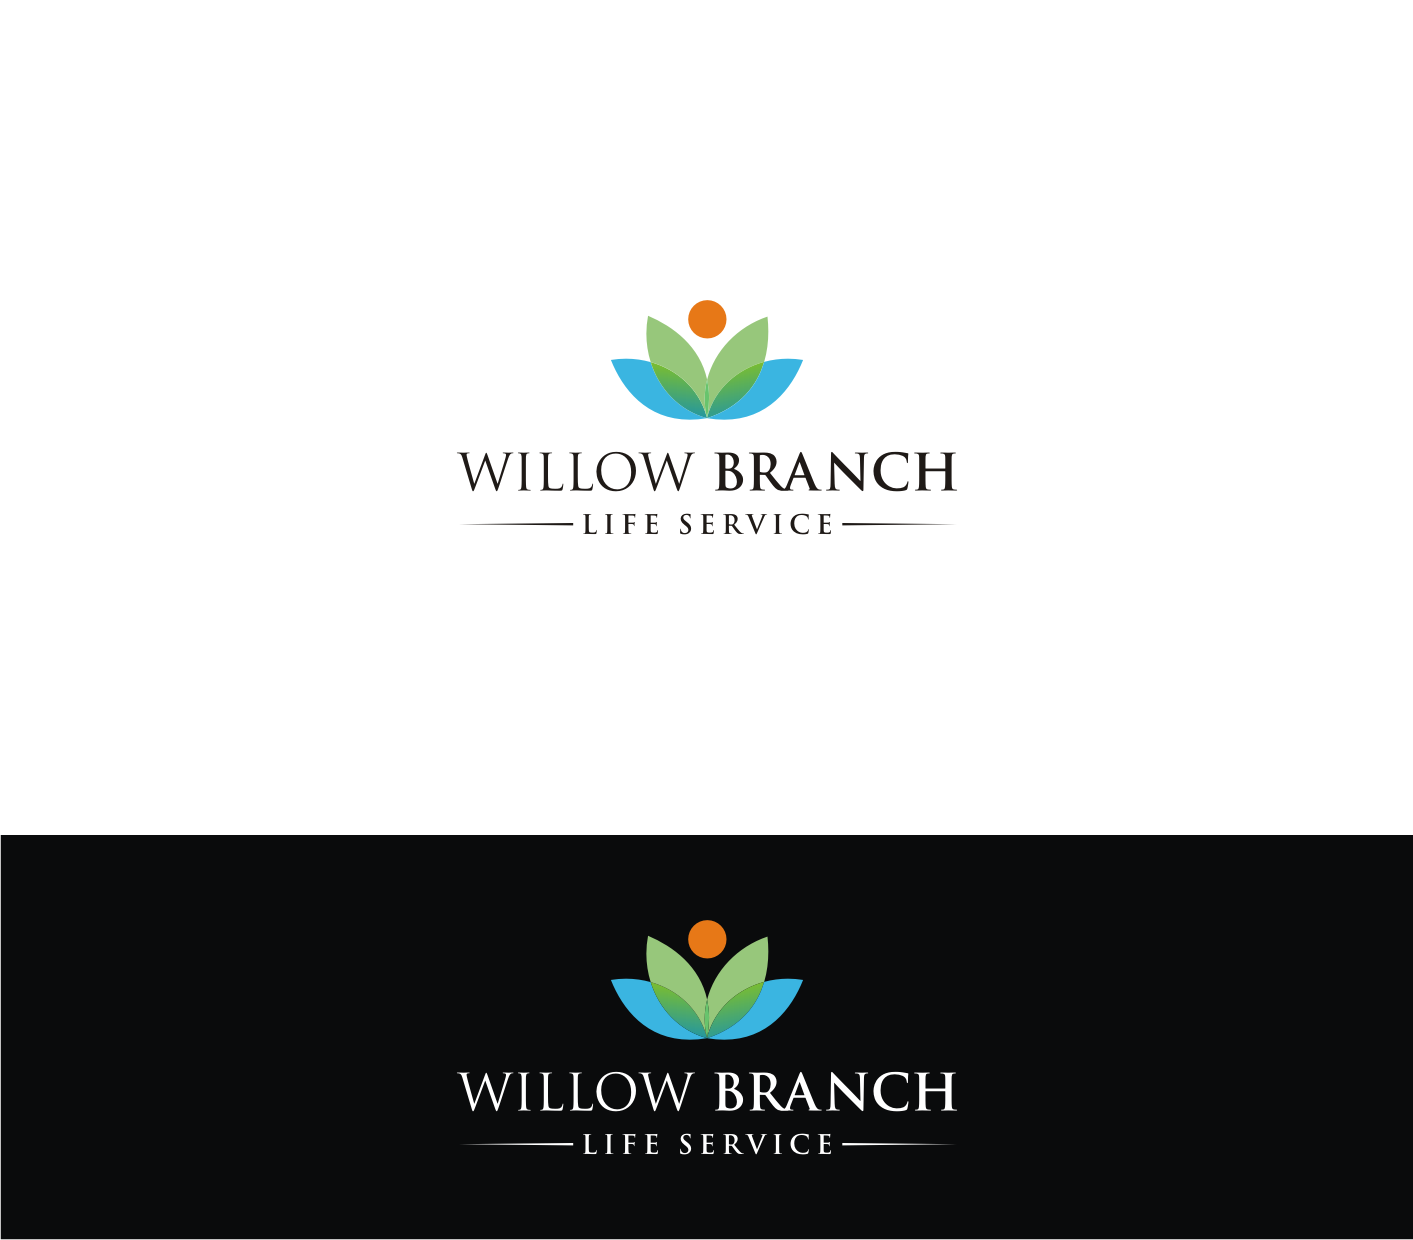 Logo Design by Sigitumarali Sigit - Entry No. 66 in the Logo Design Contest Artistic Logo Design for Willow Branch Life Service.